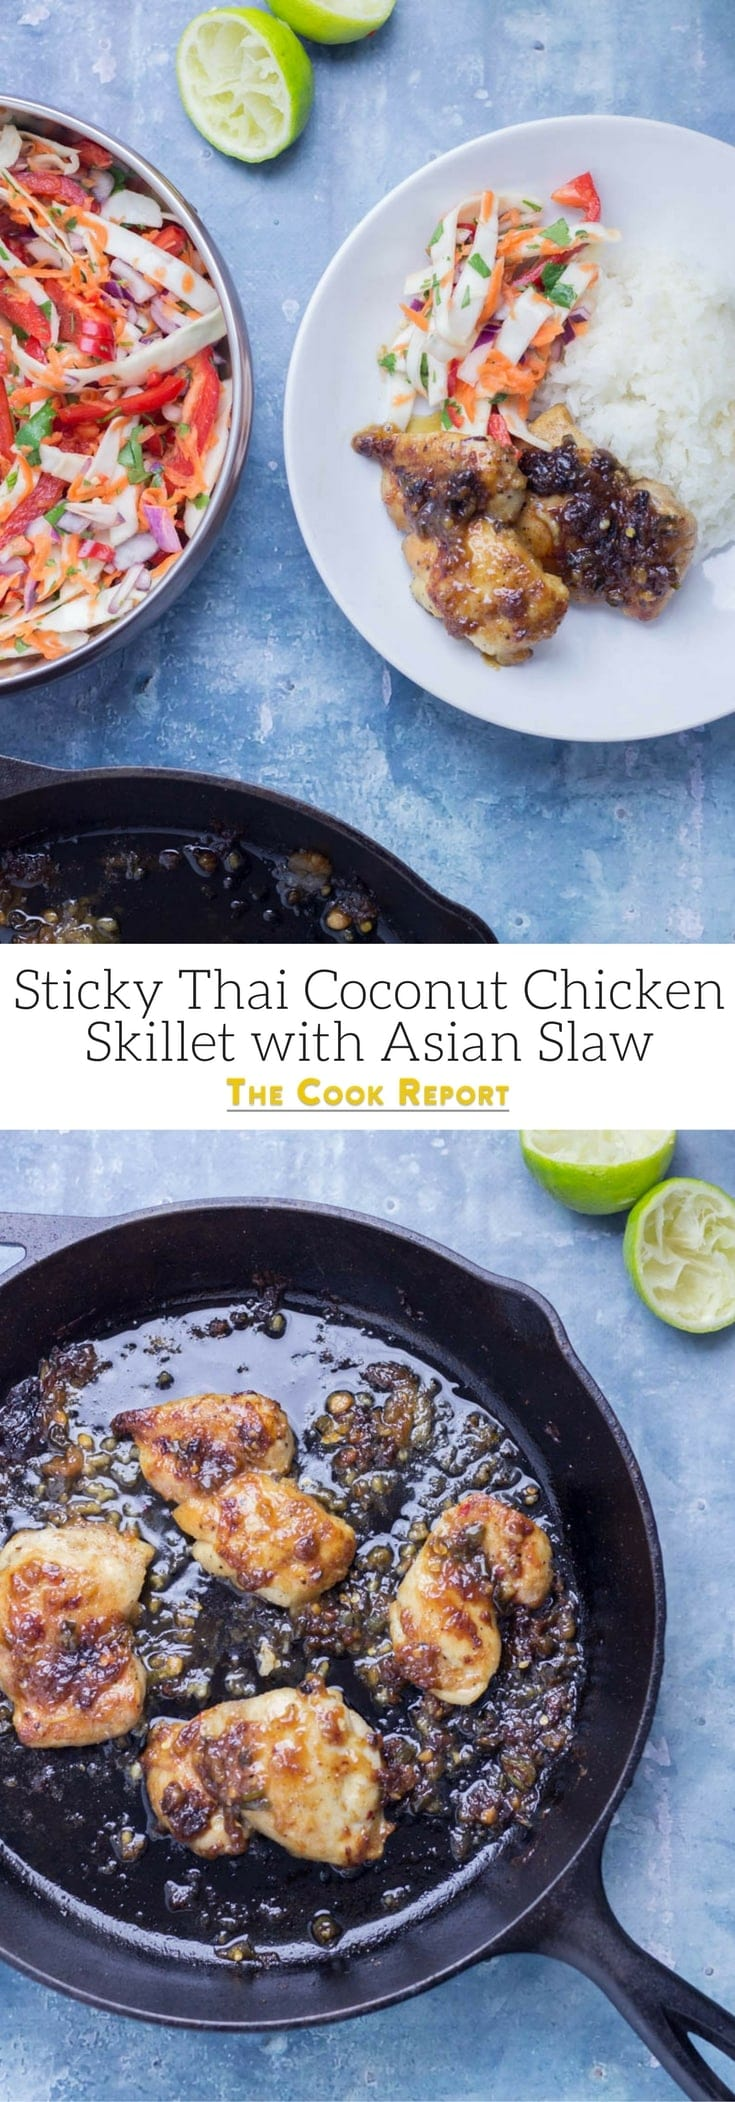 Thai Coconut Chicken Skillet with Asian Slaw. This Thai coconut chicken skillet is super sticky and full of flavour. Served with a refreshing Asian slaw it's the perfect weeknight dinner! #thaifood #recipe #skillet #chicken